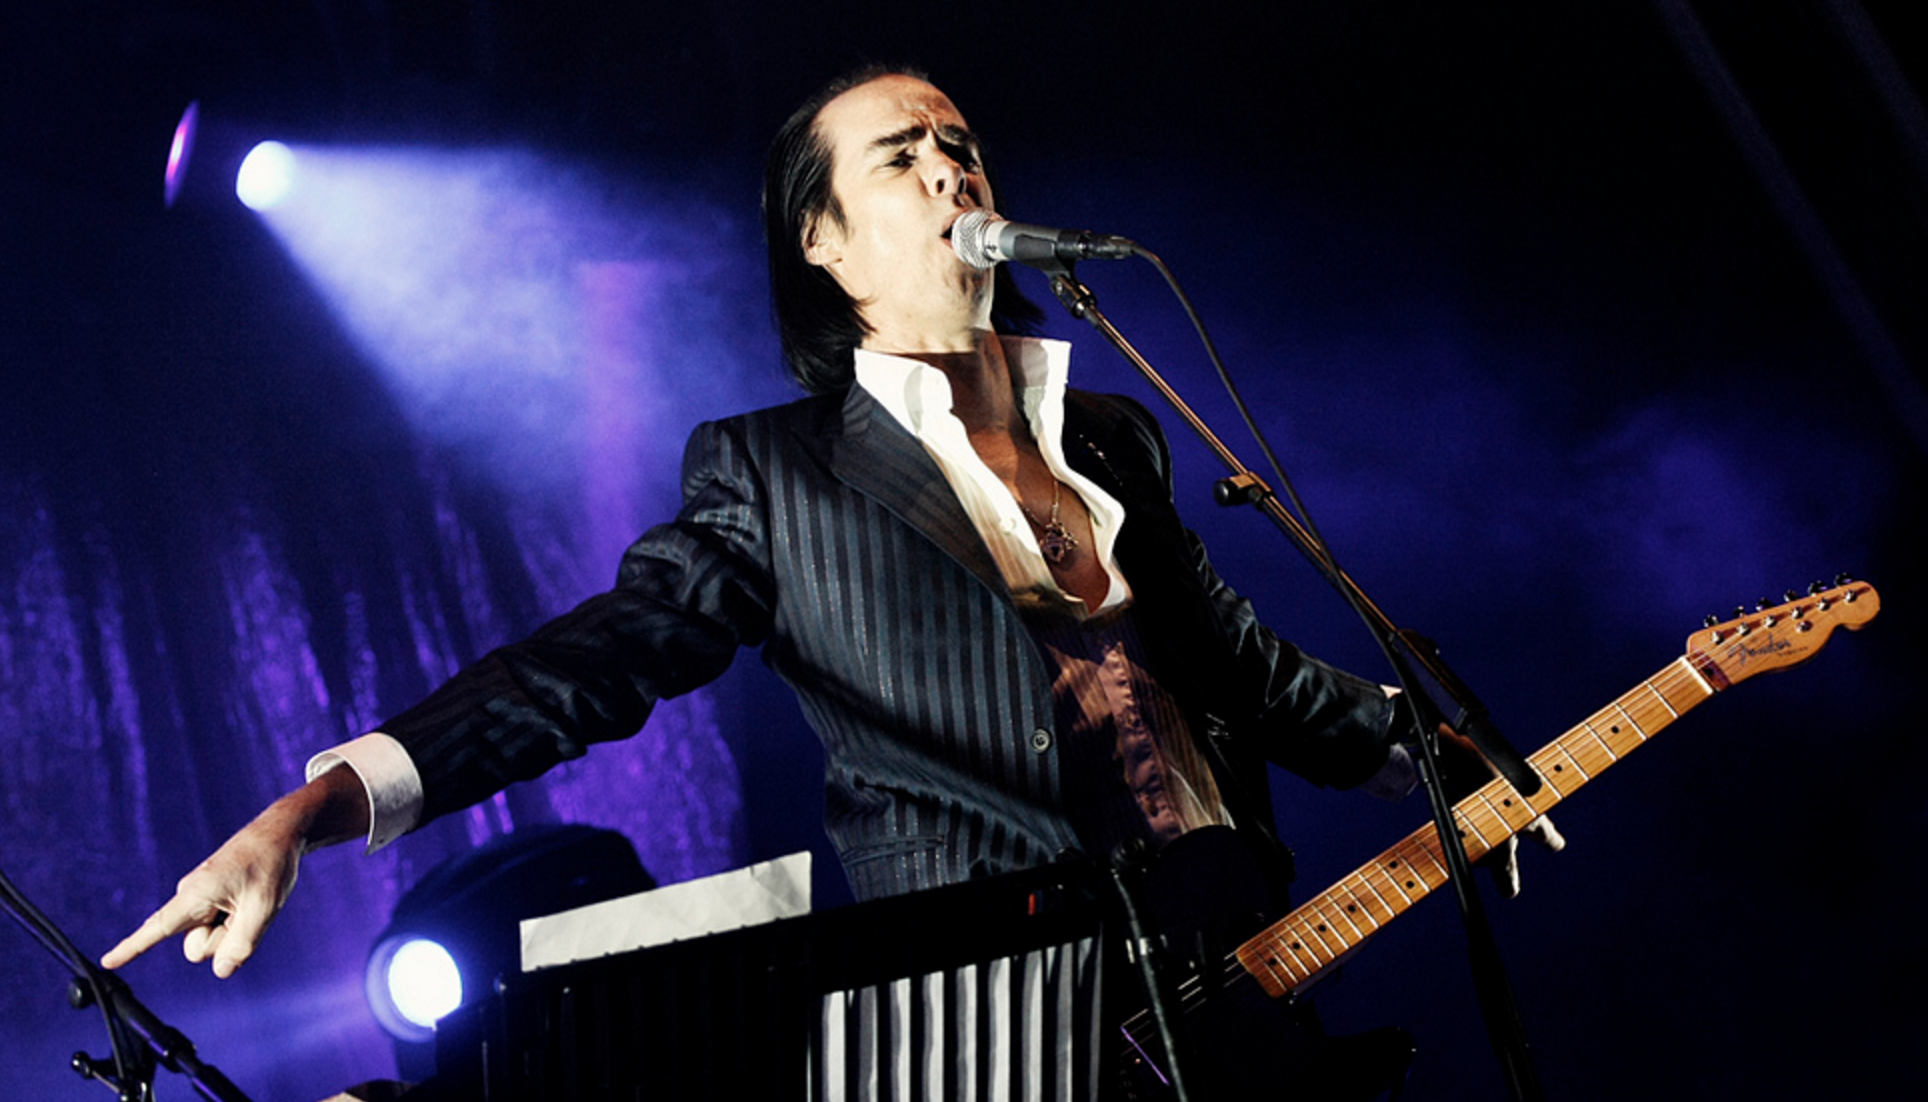 NICK CAVE. PIC BY: SERGIO ALBERT